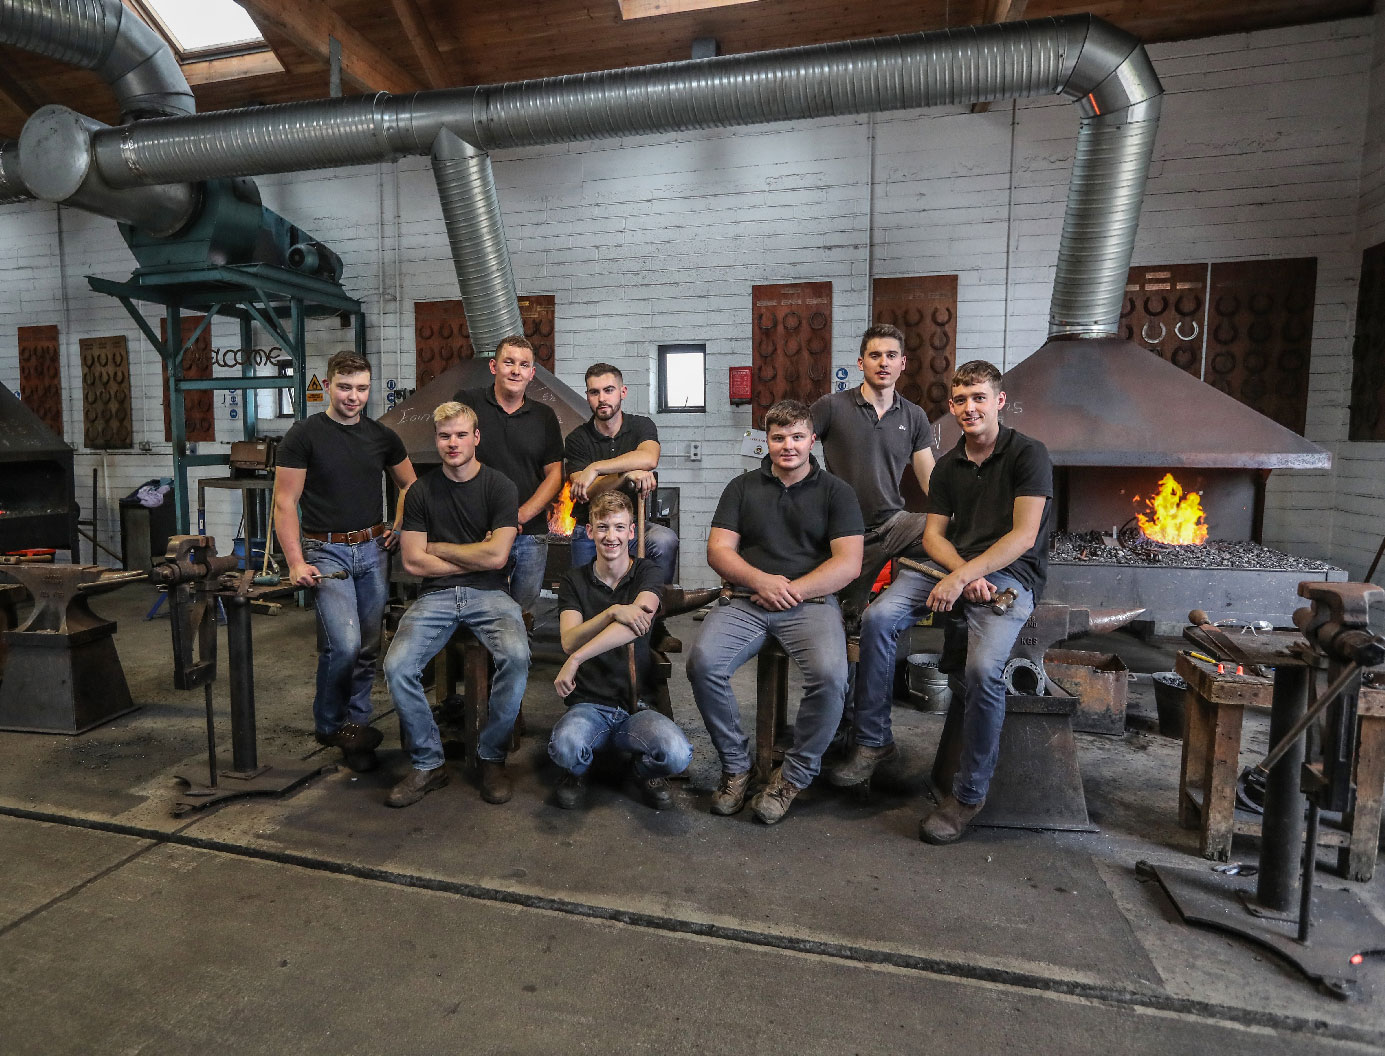 Group of student farriers training in the forge, The Curragh, Co. Kildare